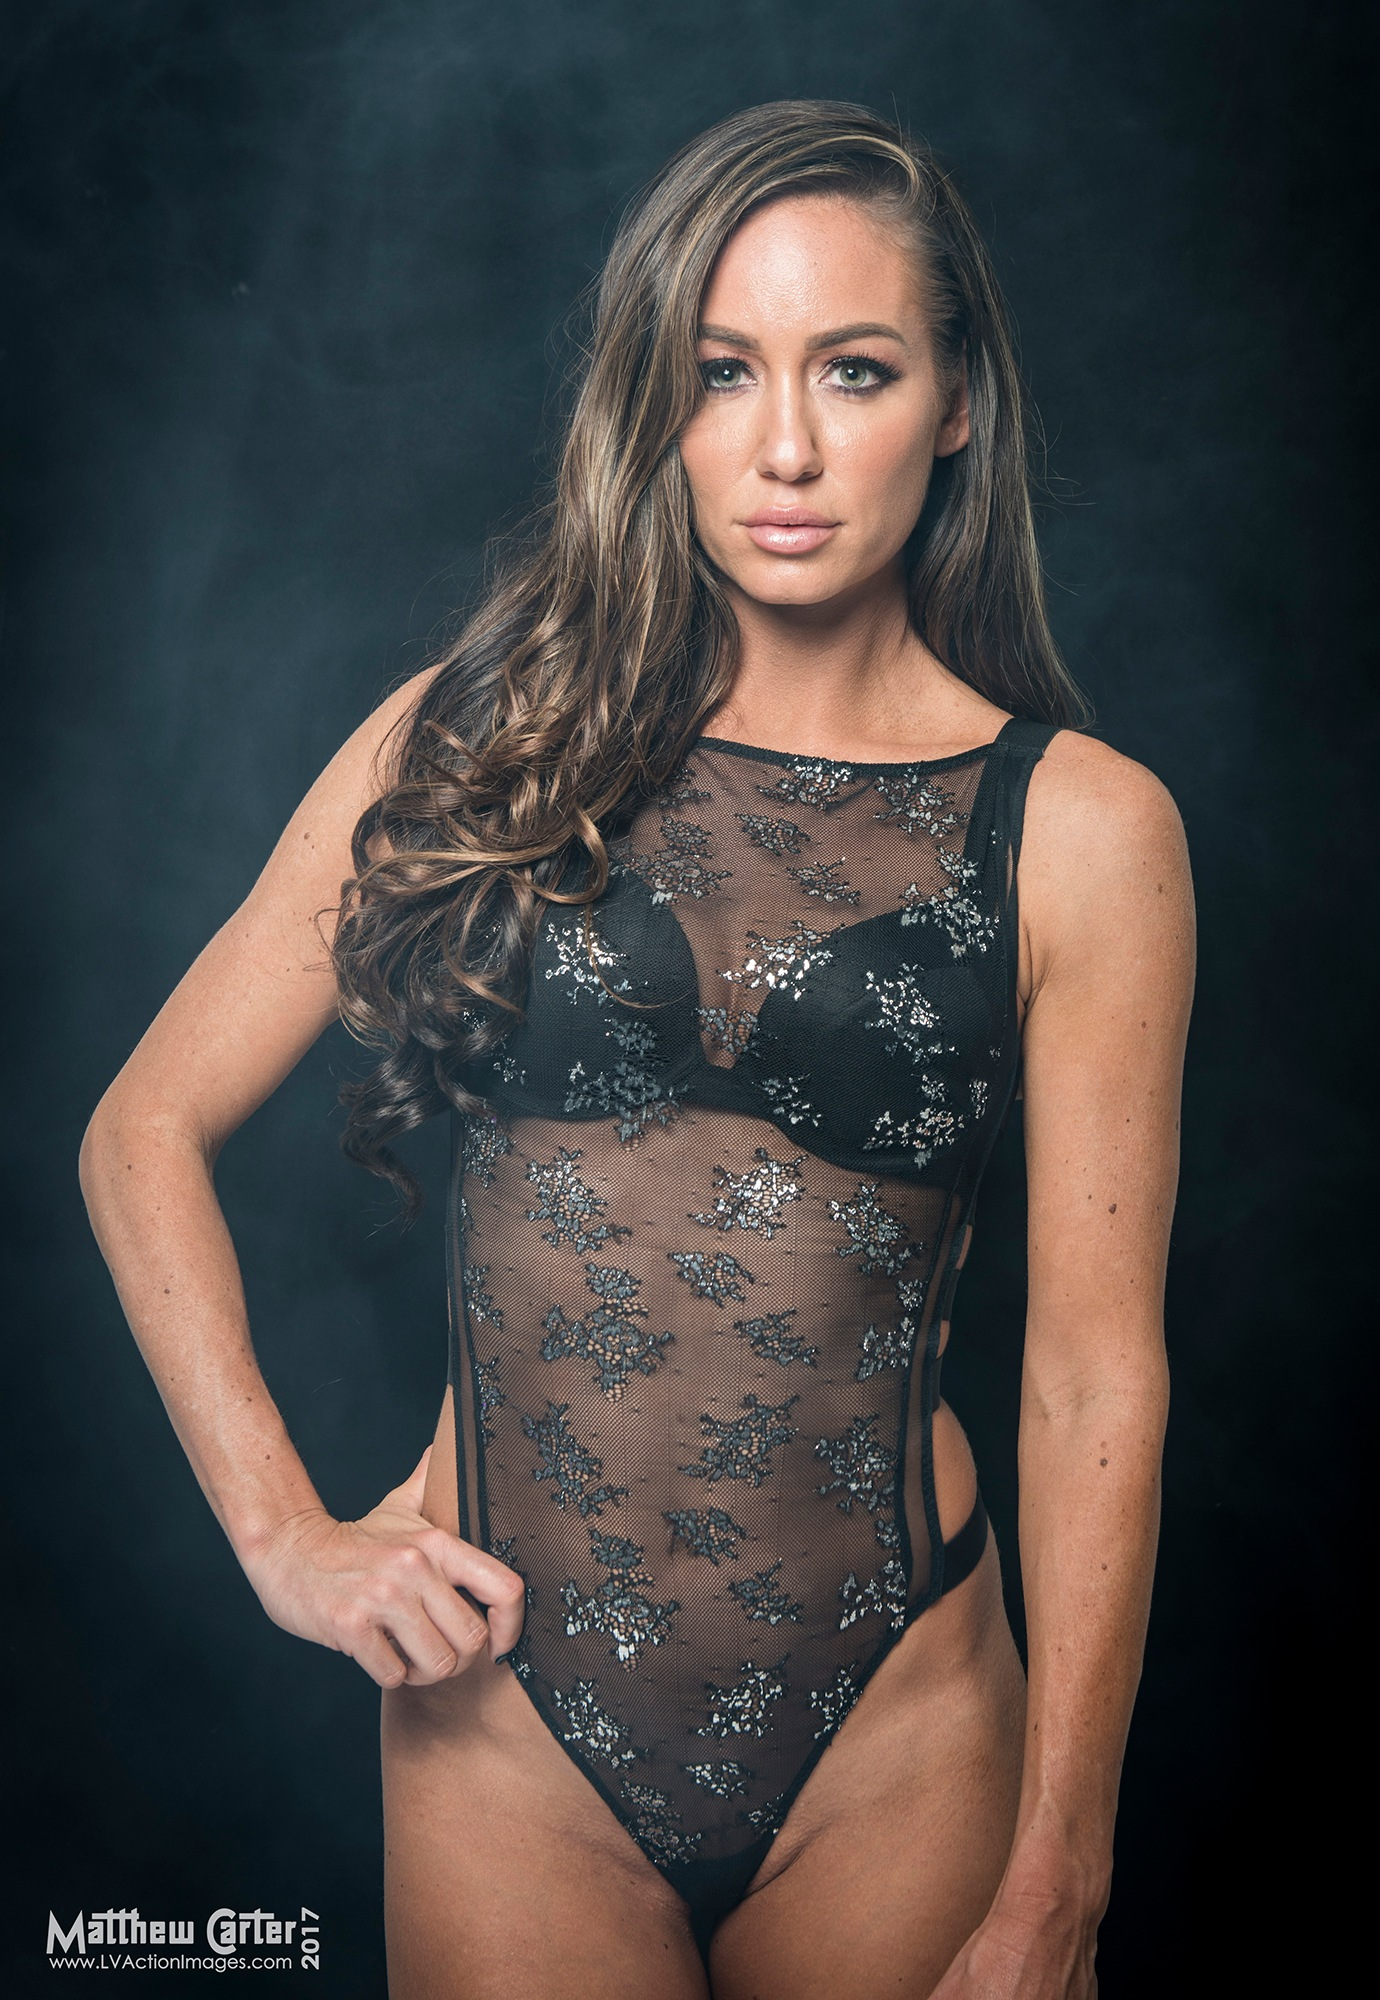 Model Tiffanie by LV Action Images